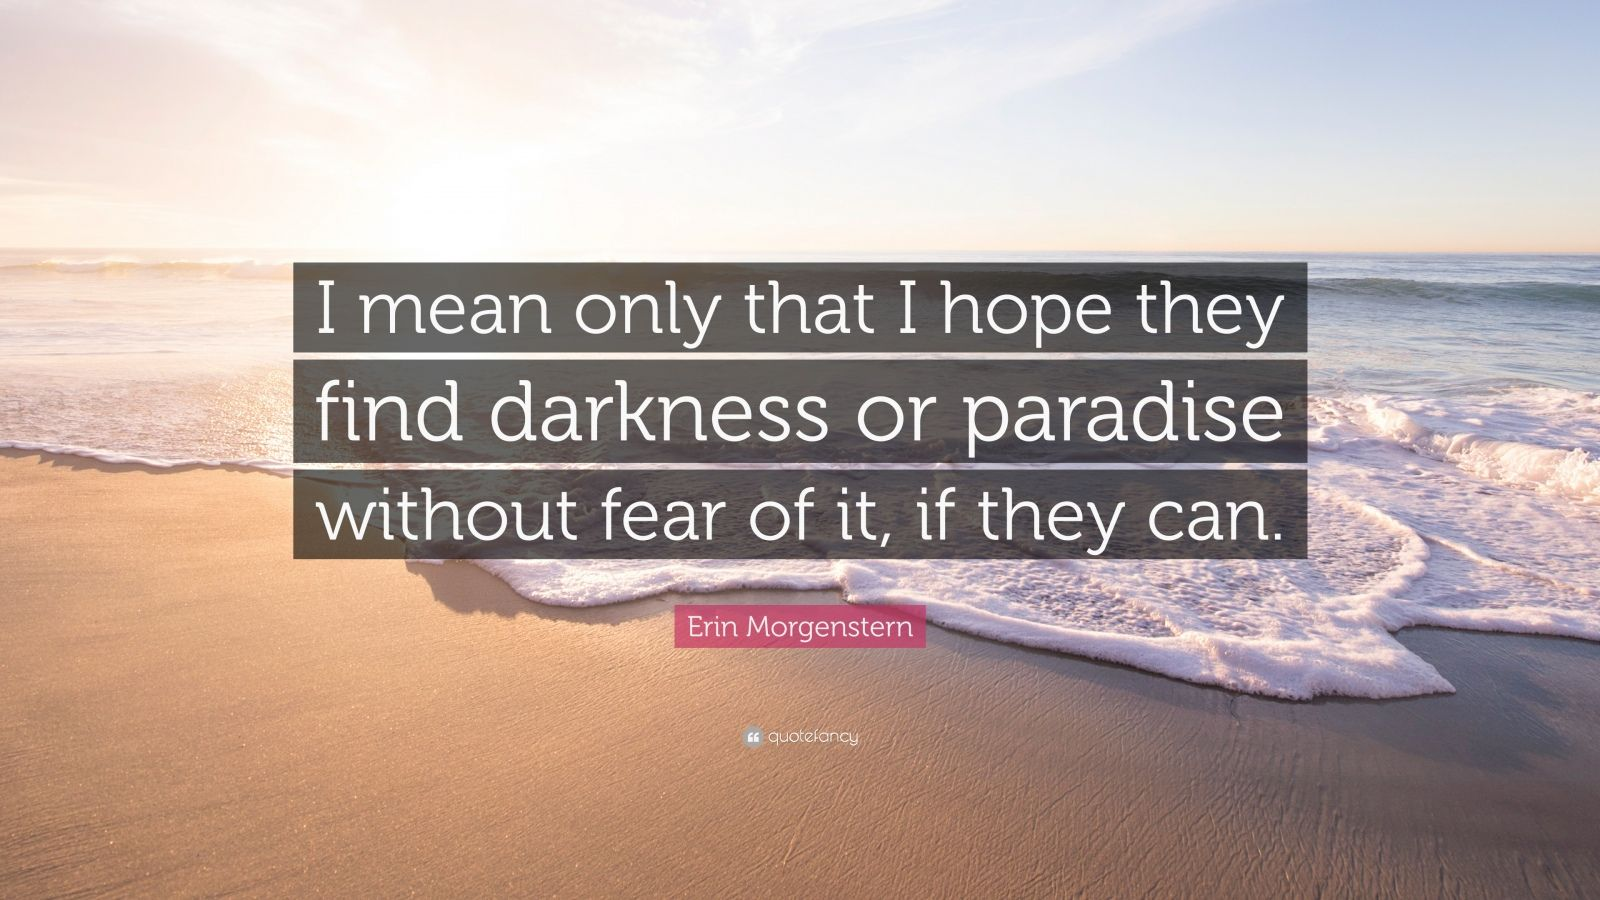 """Erin Morgenstern Quote: """"I mean only that I hope they find darkness or paradise without fear of it, if they can."""""""